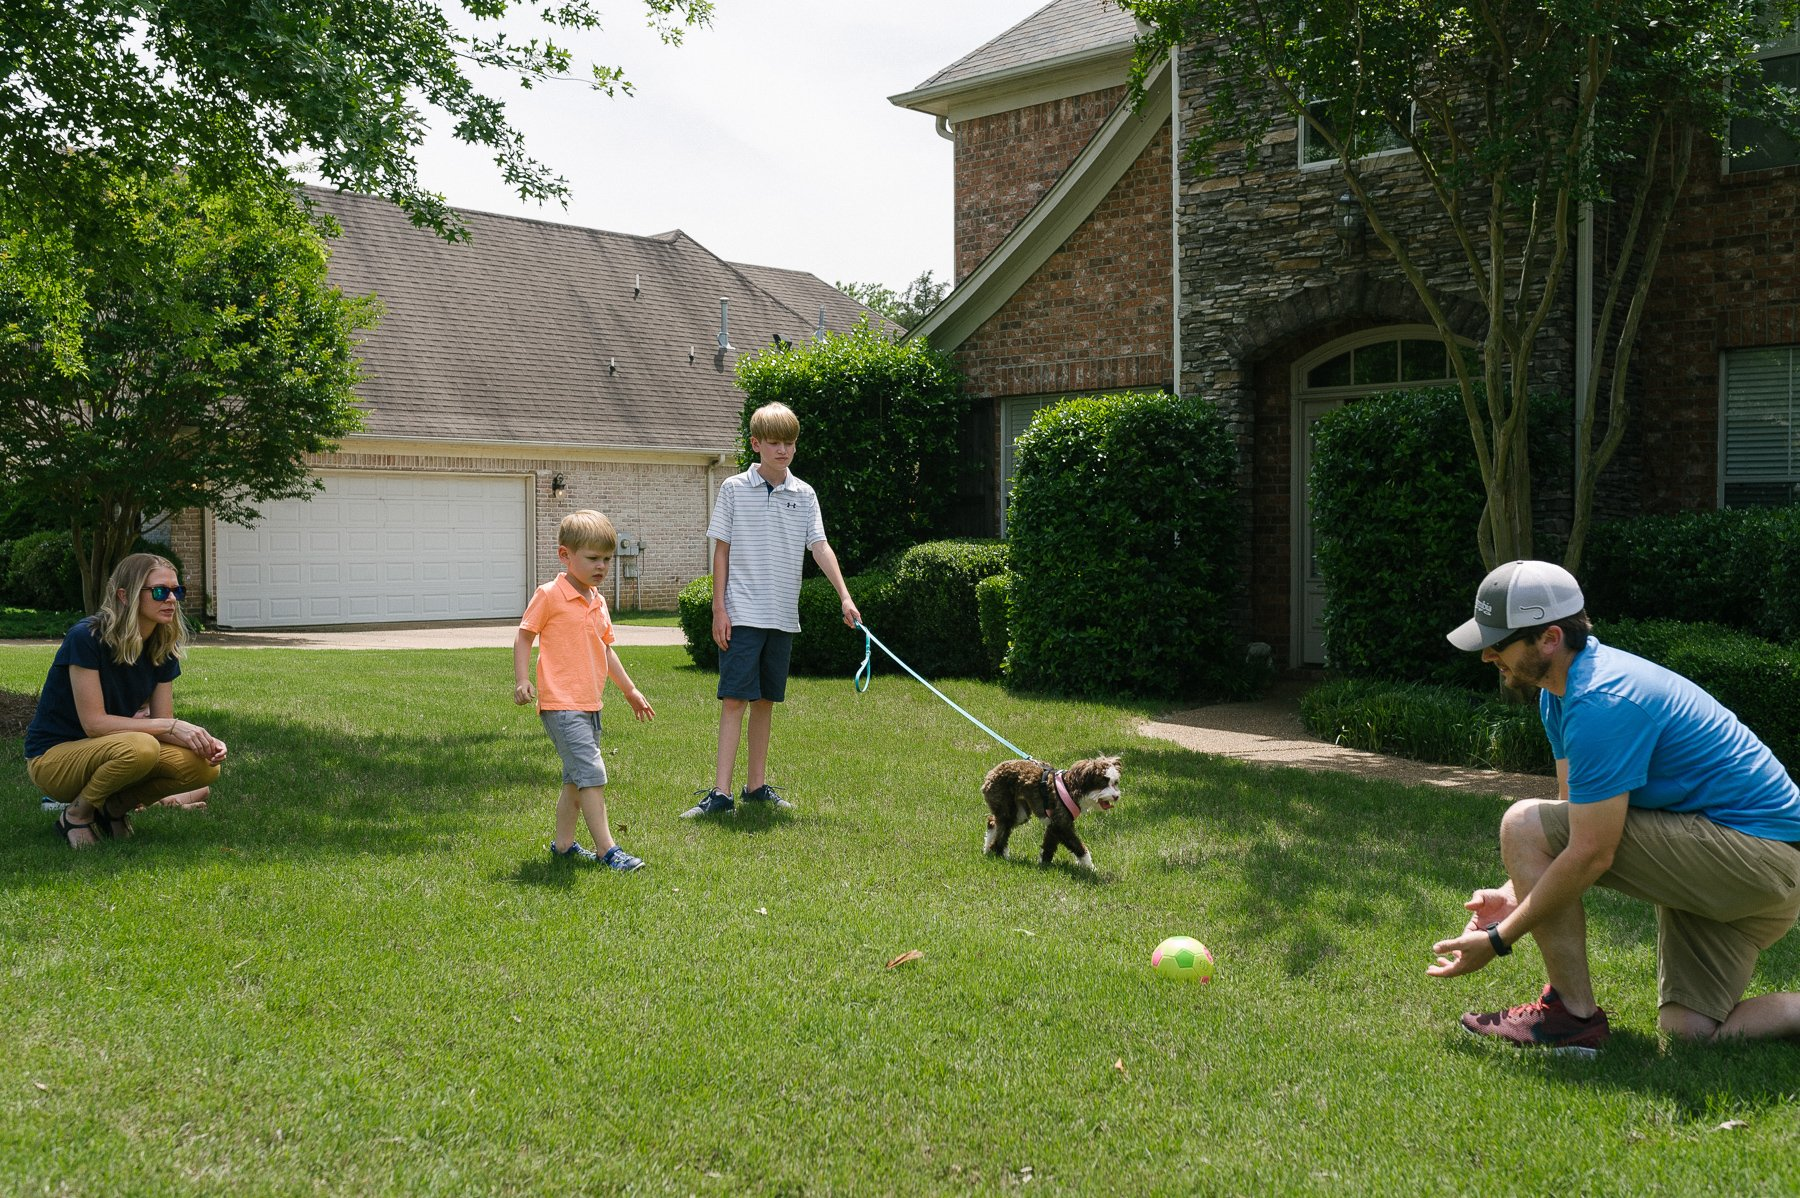 children-family-games-dog-customer-9